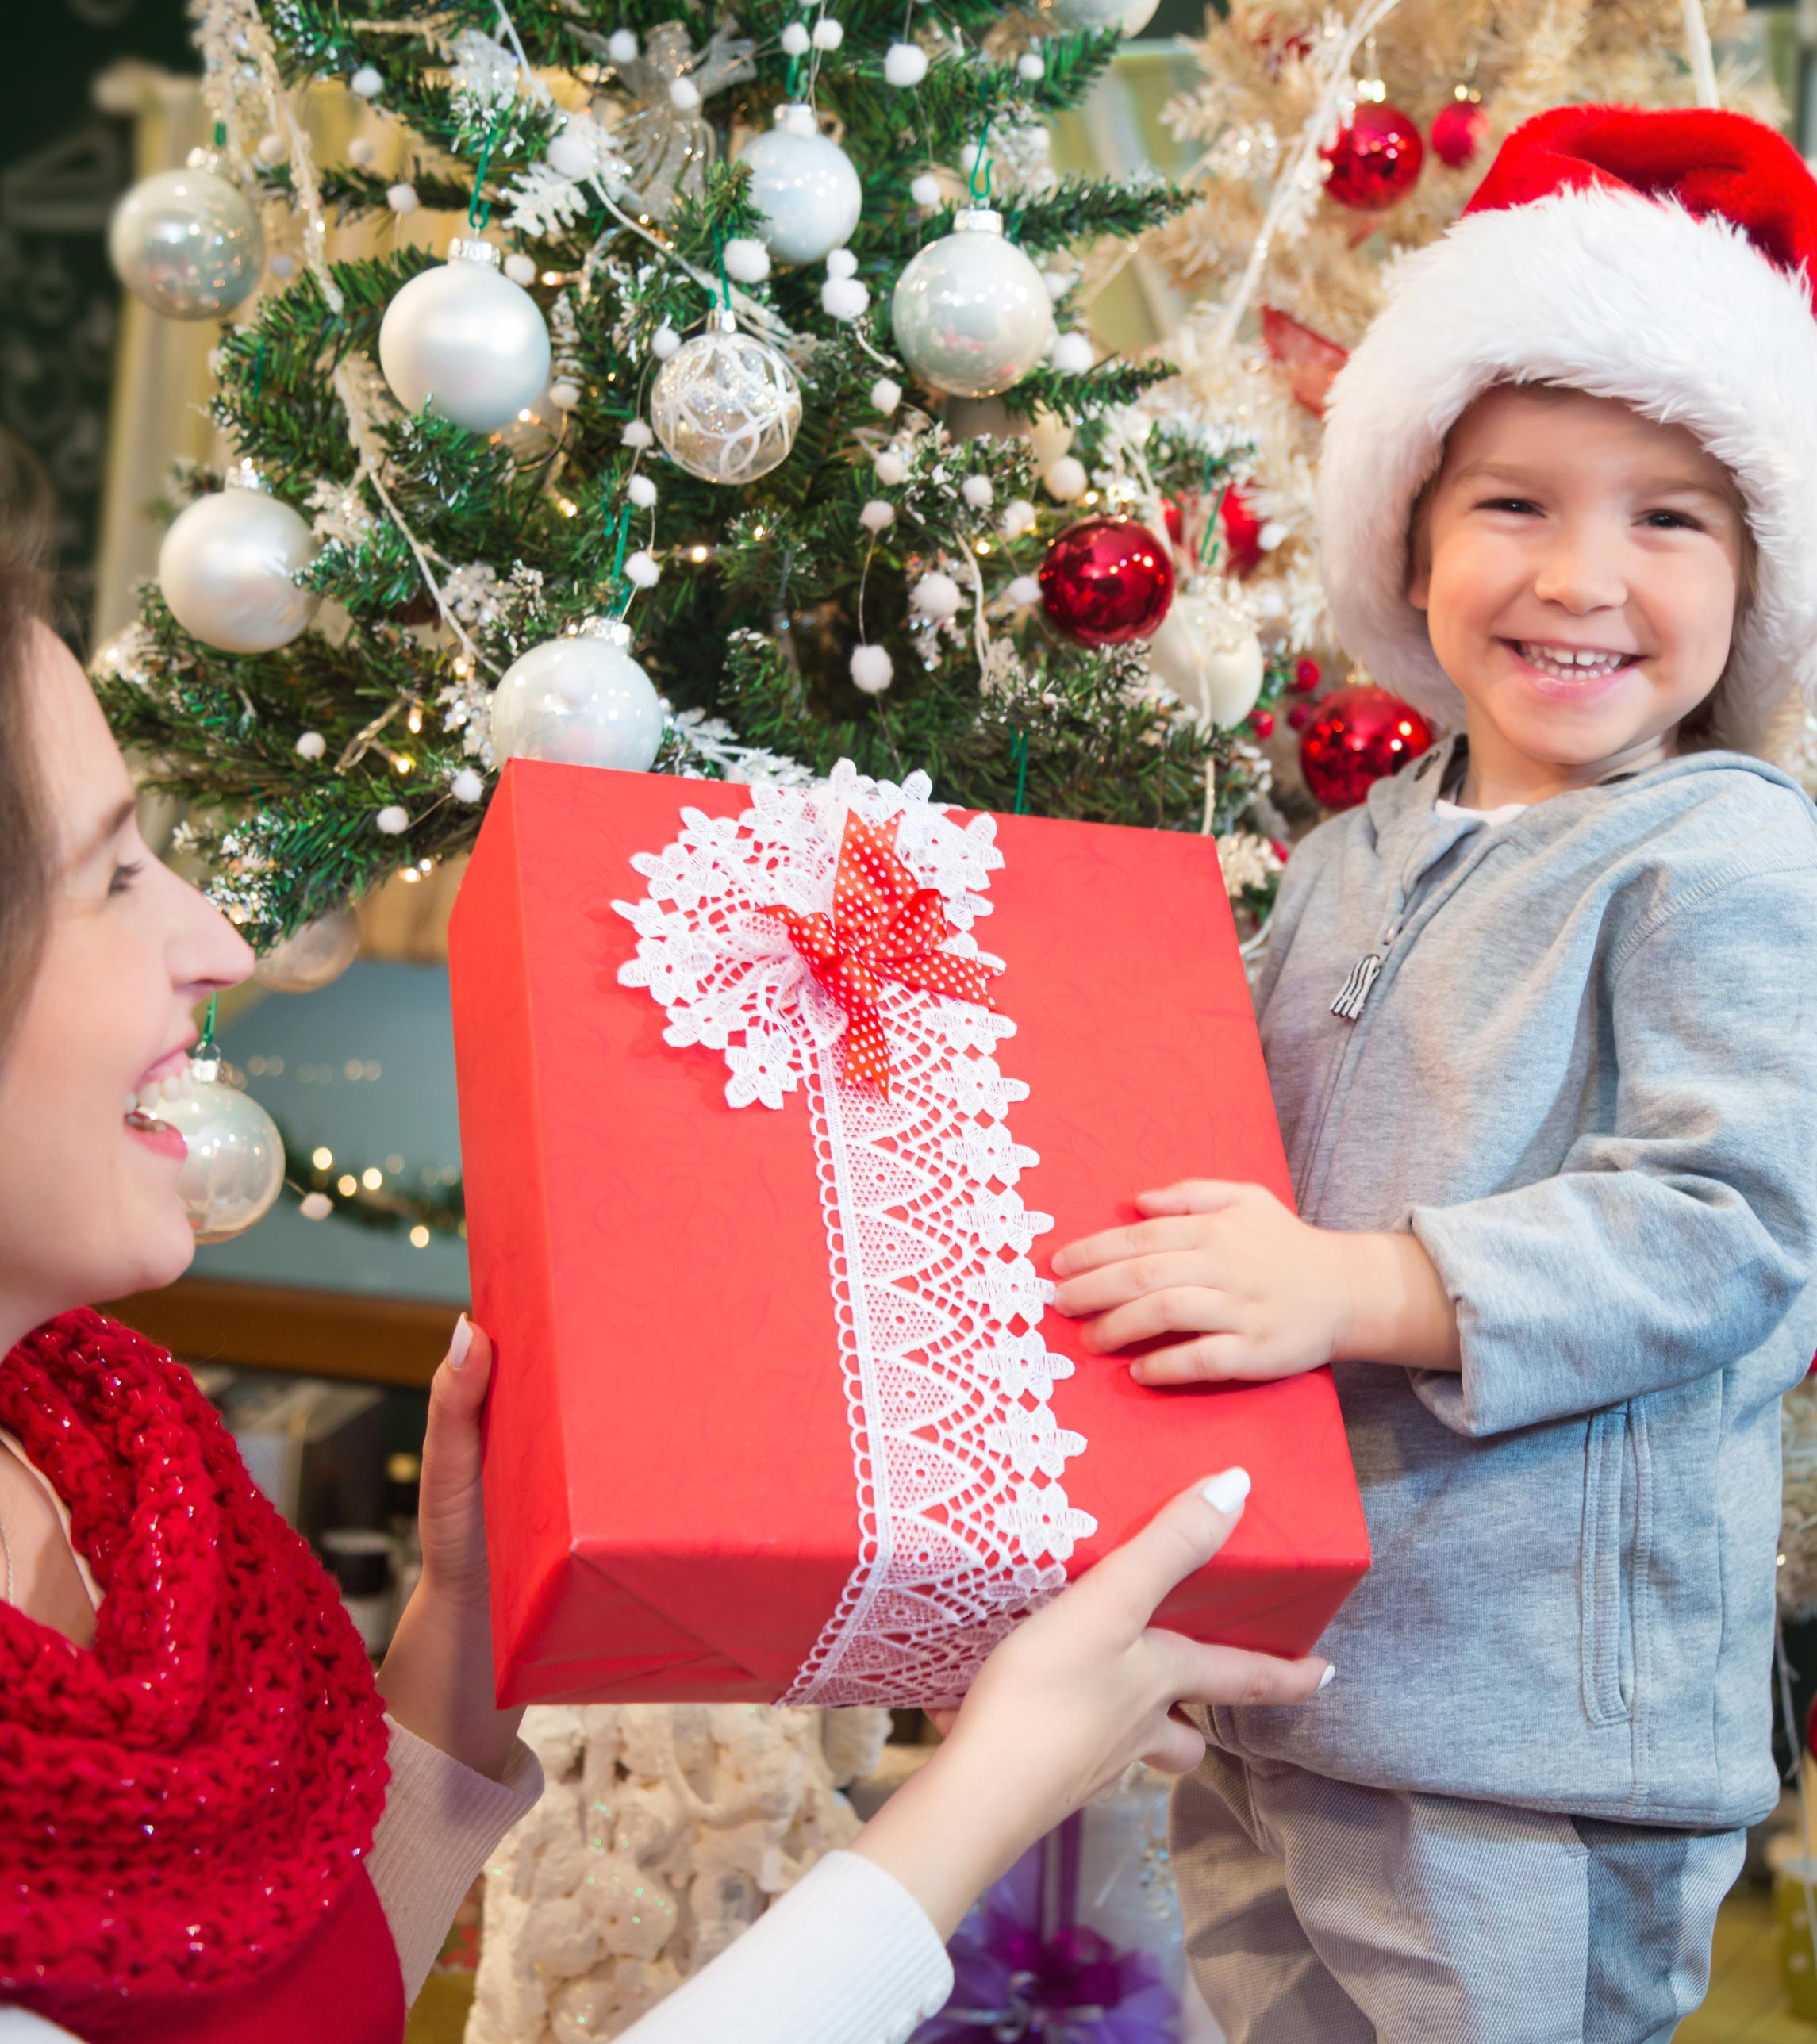 Christmas Gifts For Kids.25 Fun And Inexpensive Christmas Gifts For Kids